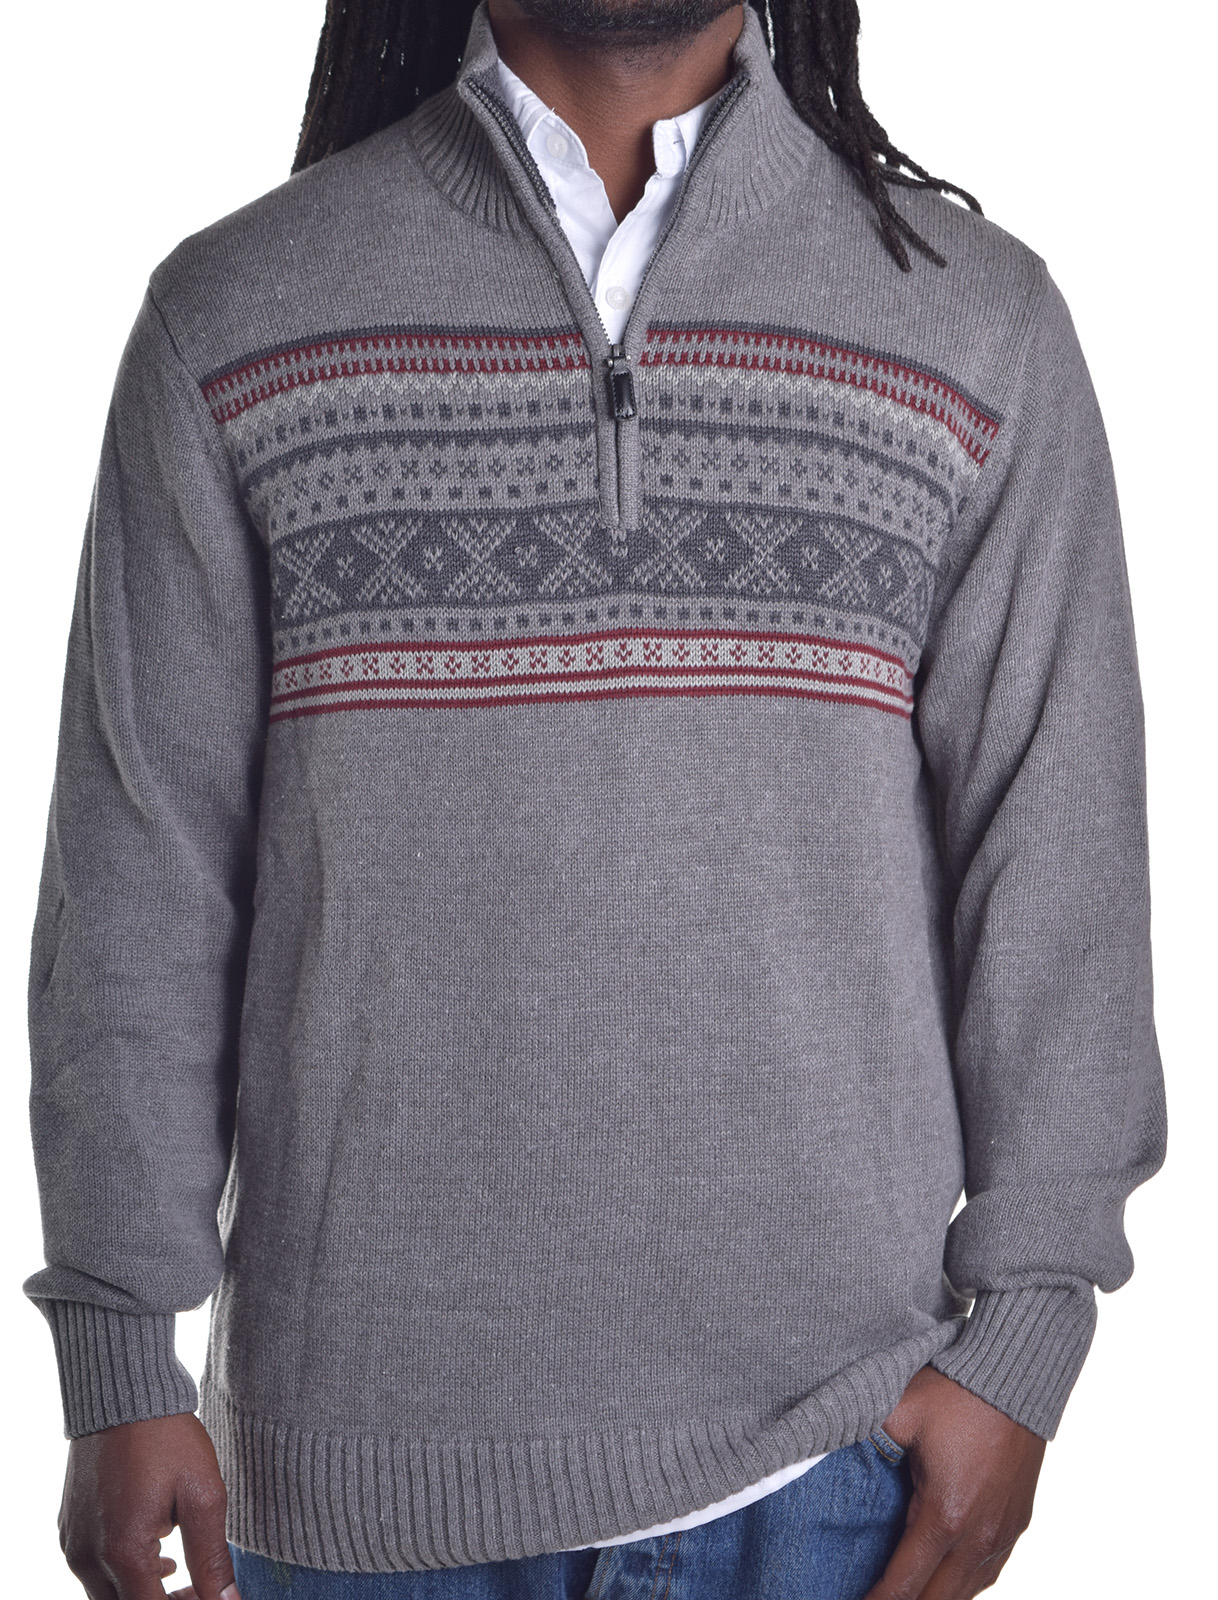 Tricots ST Raphael Men's 1/4 Zip Acrylic Pull Over Sweater ...